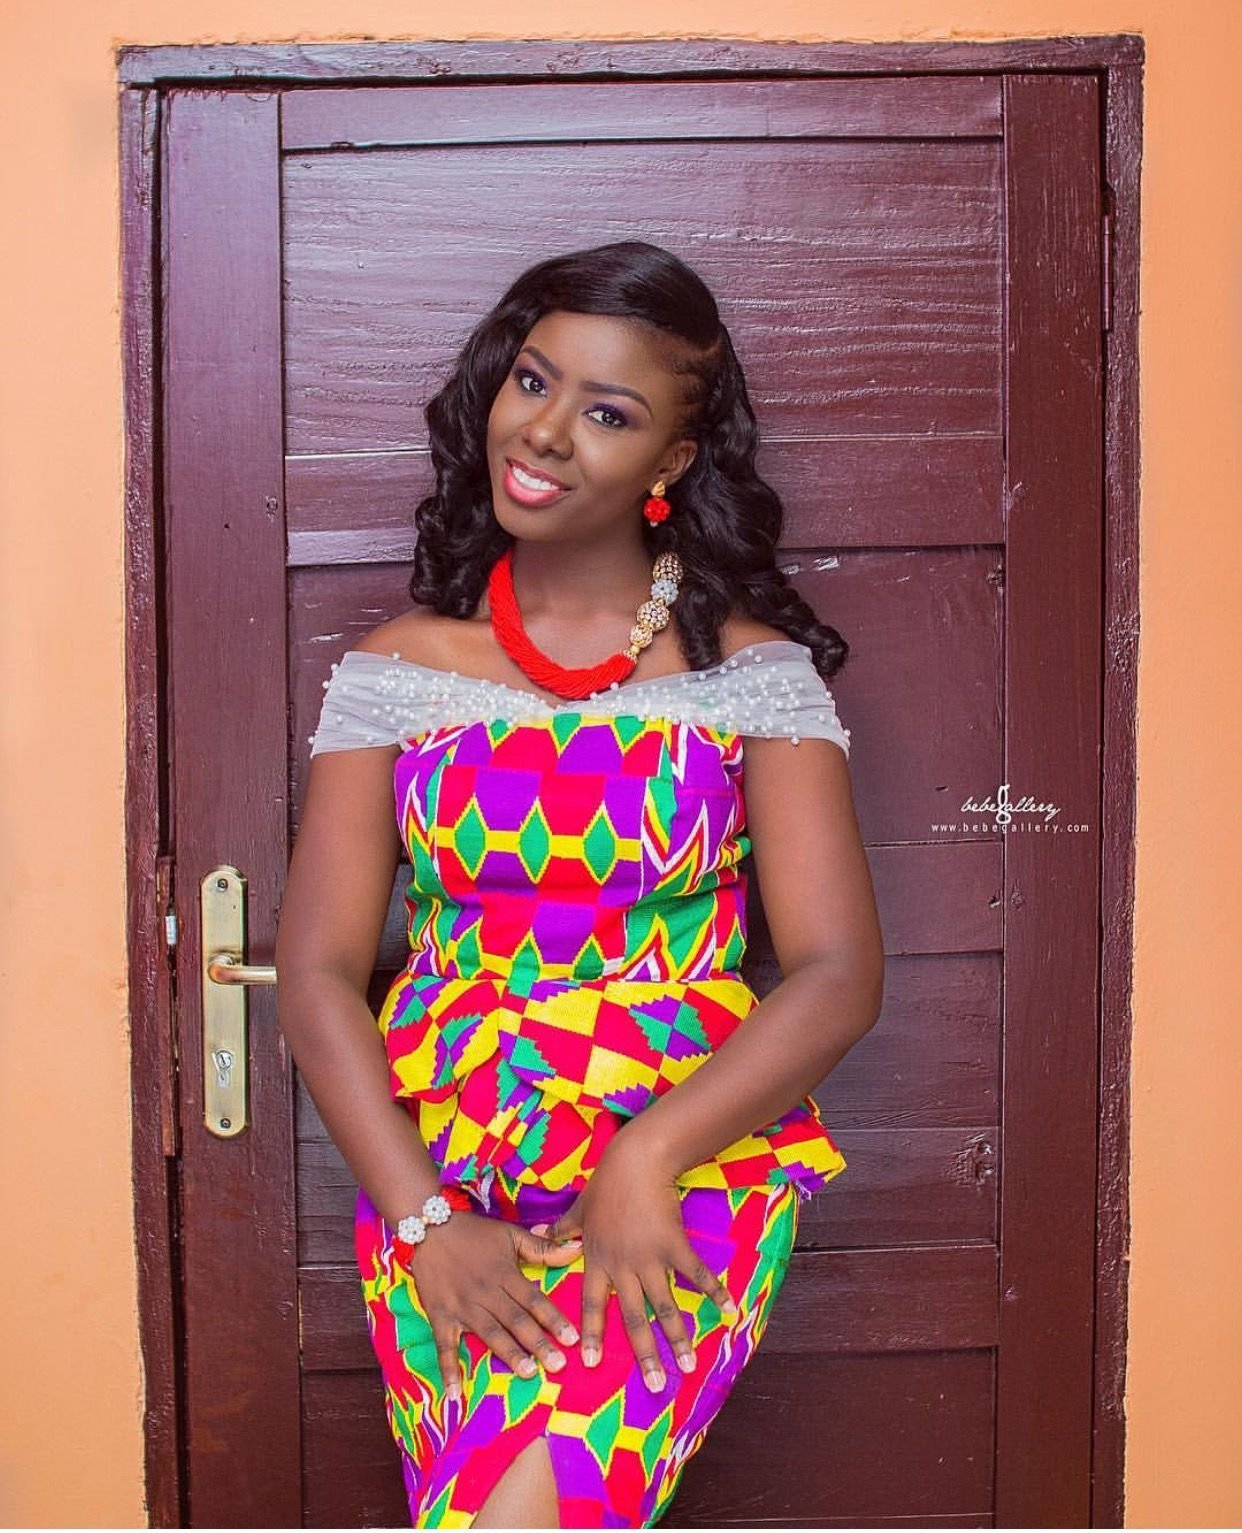 Kente wedding decorations  Pin by Mz Efya on engagement weddings  Pinterest  African fashion